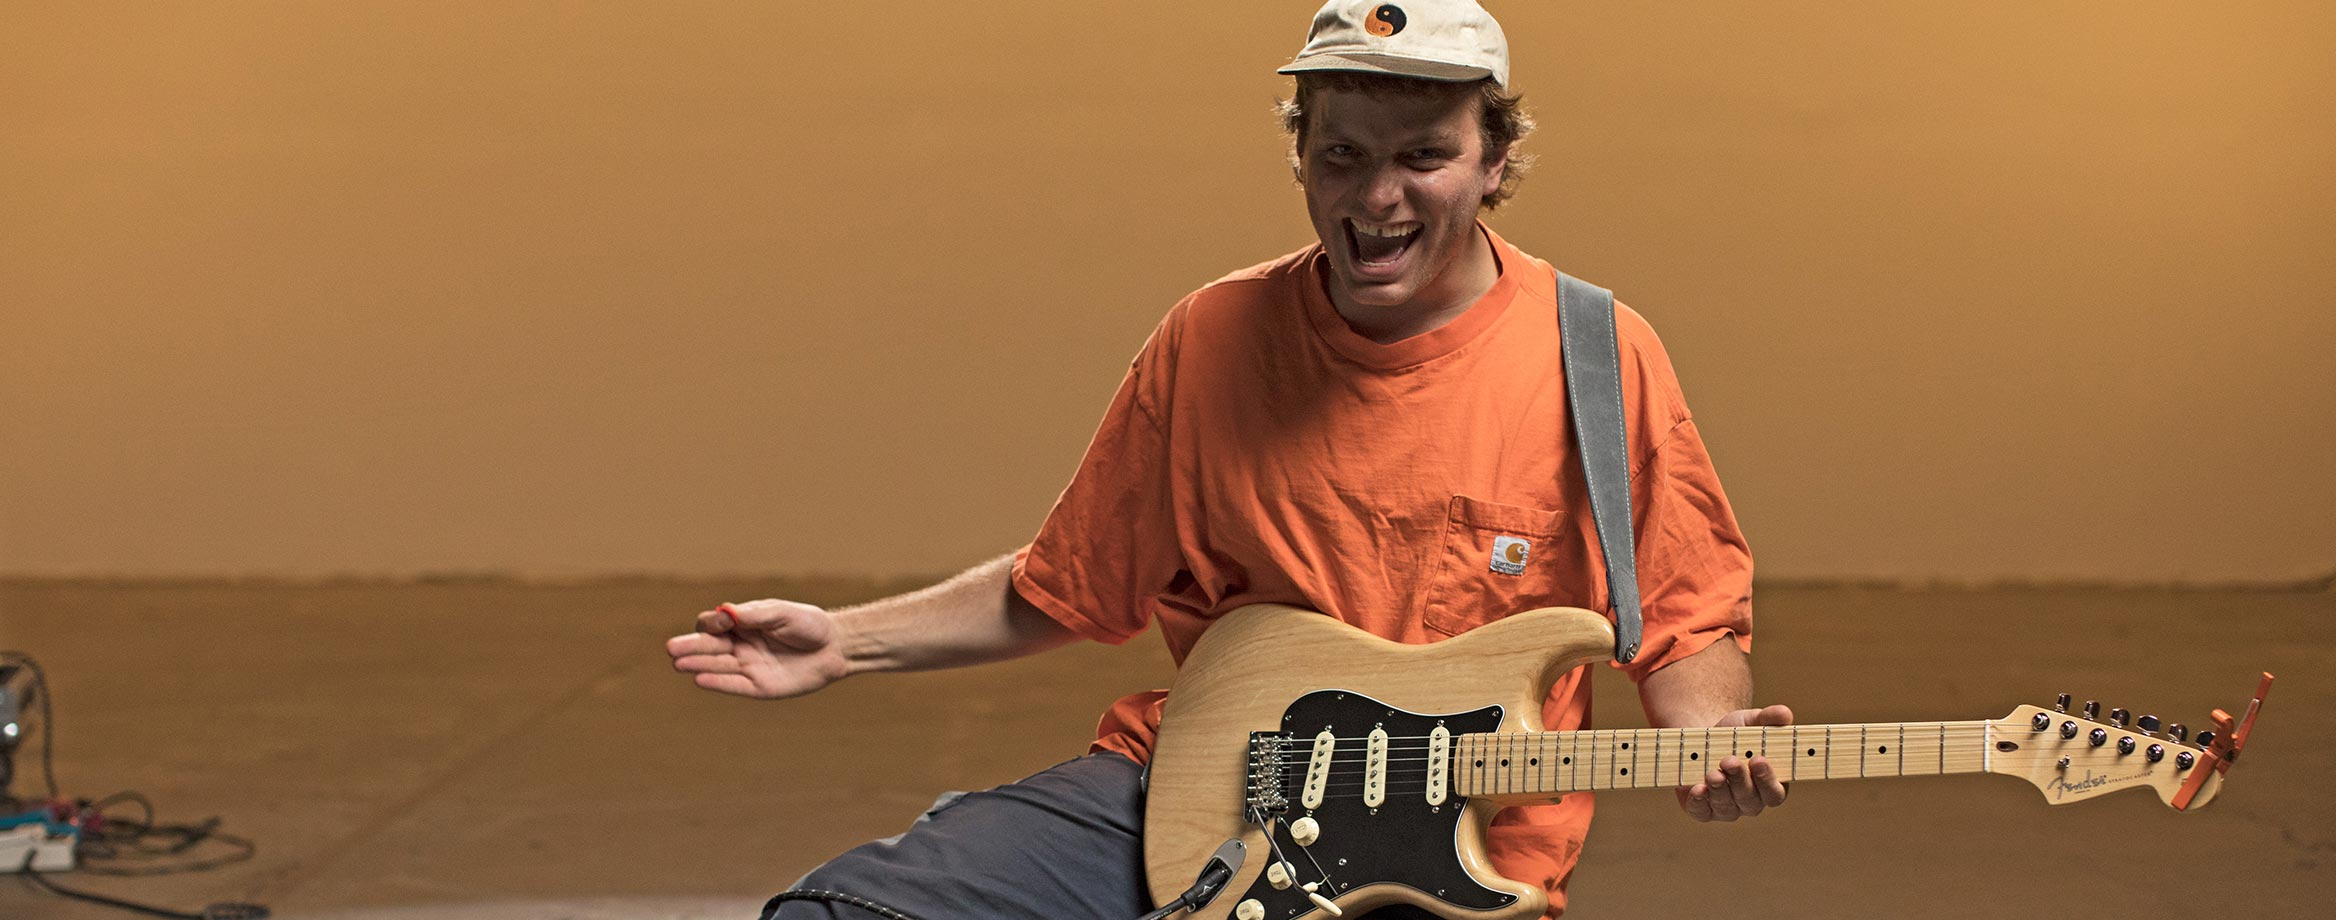 mac demarco talks stratocasters and music fender guitars. Black Bedroom Furniture Sets. Home Design Ideas